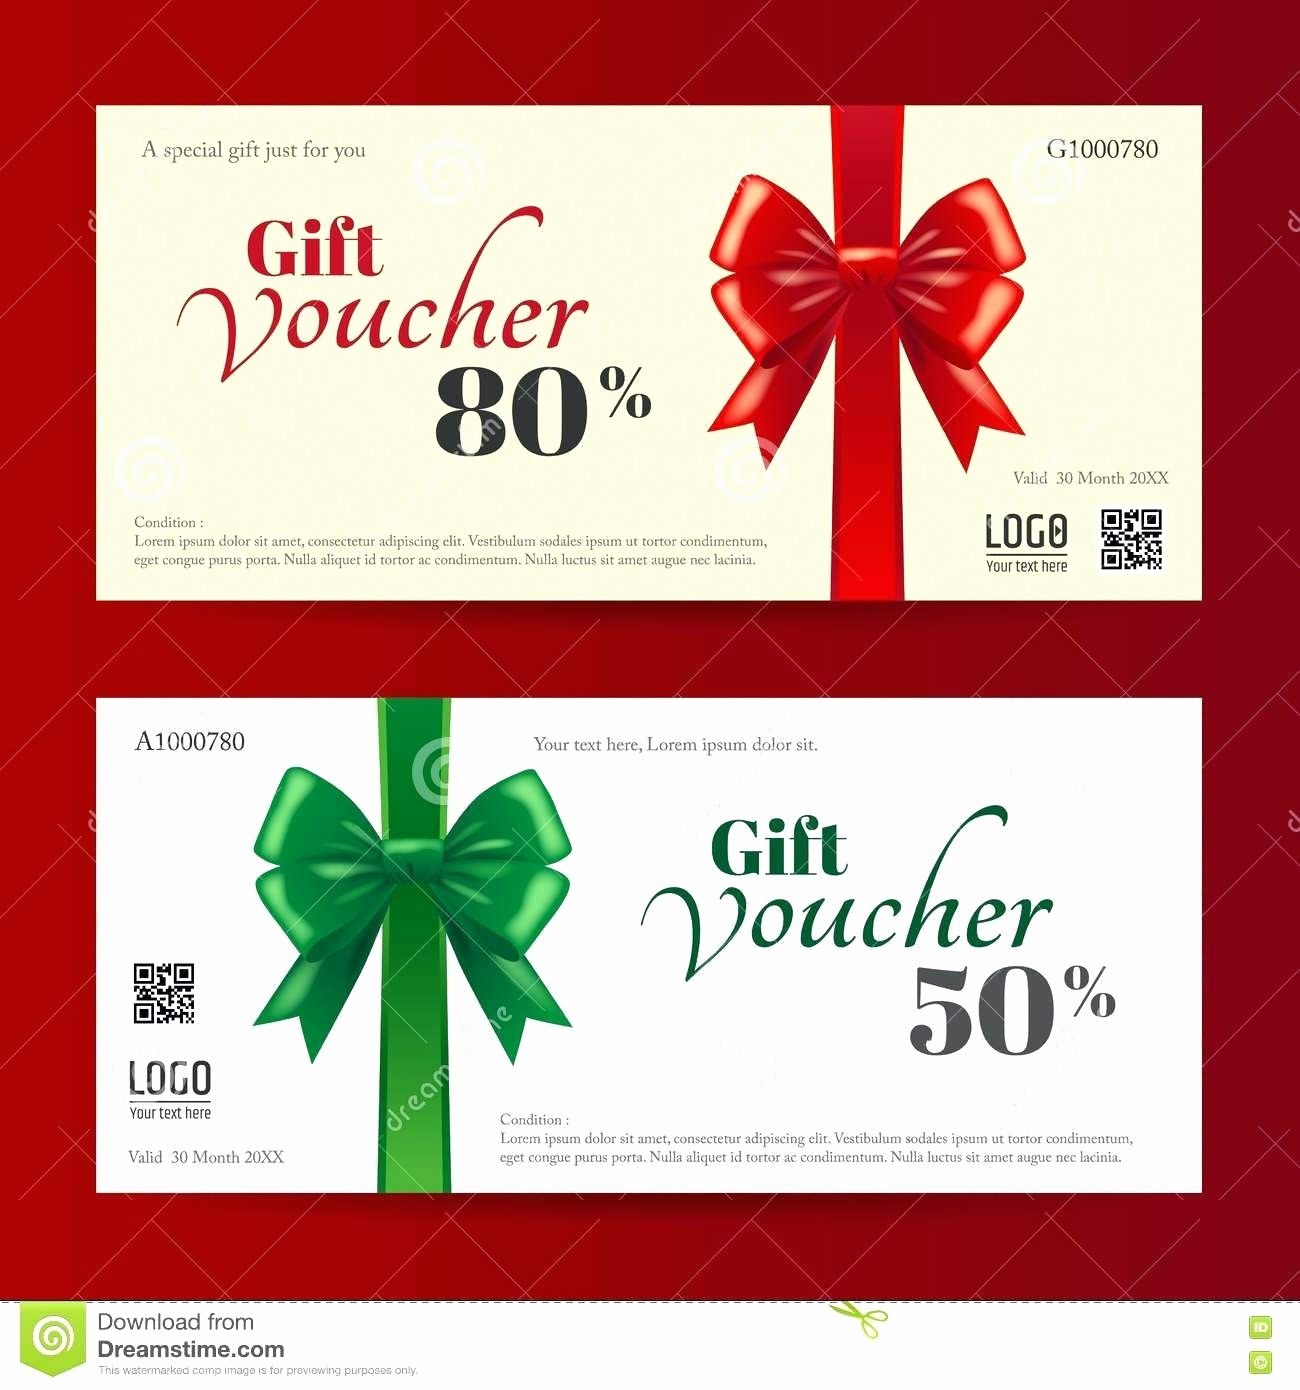 I Owe You Gift Certificate Inspirational Template I Owe You Voucher Template